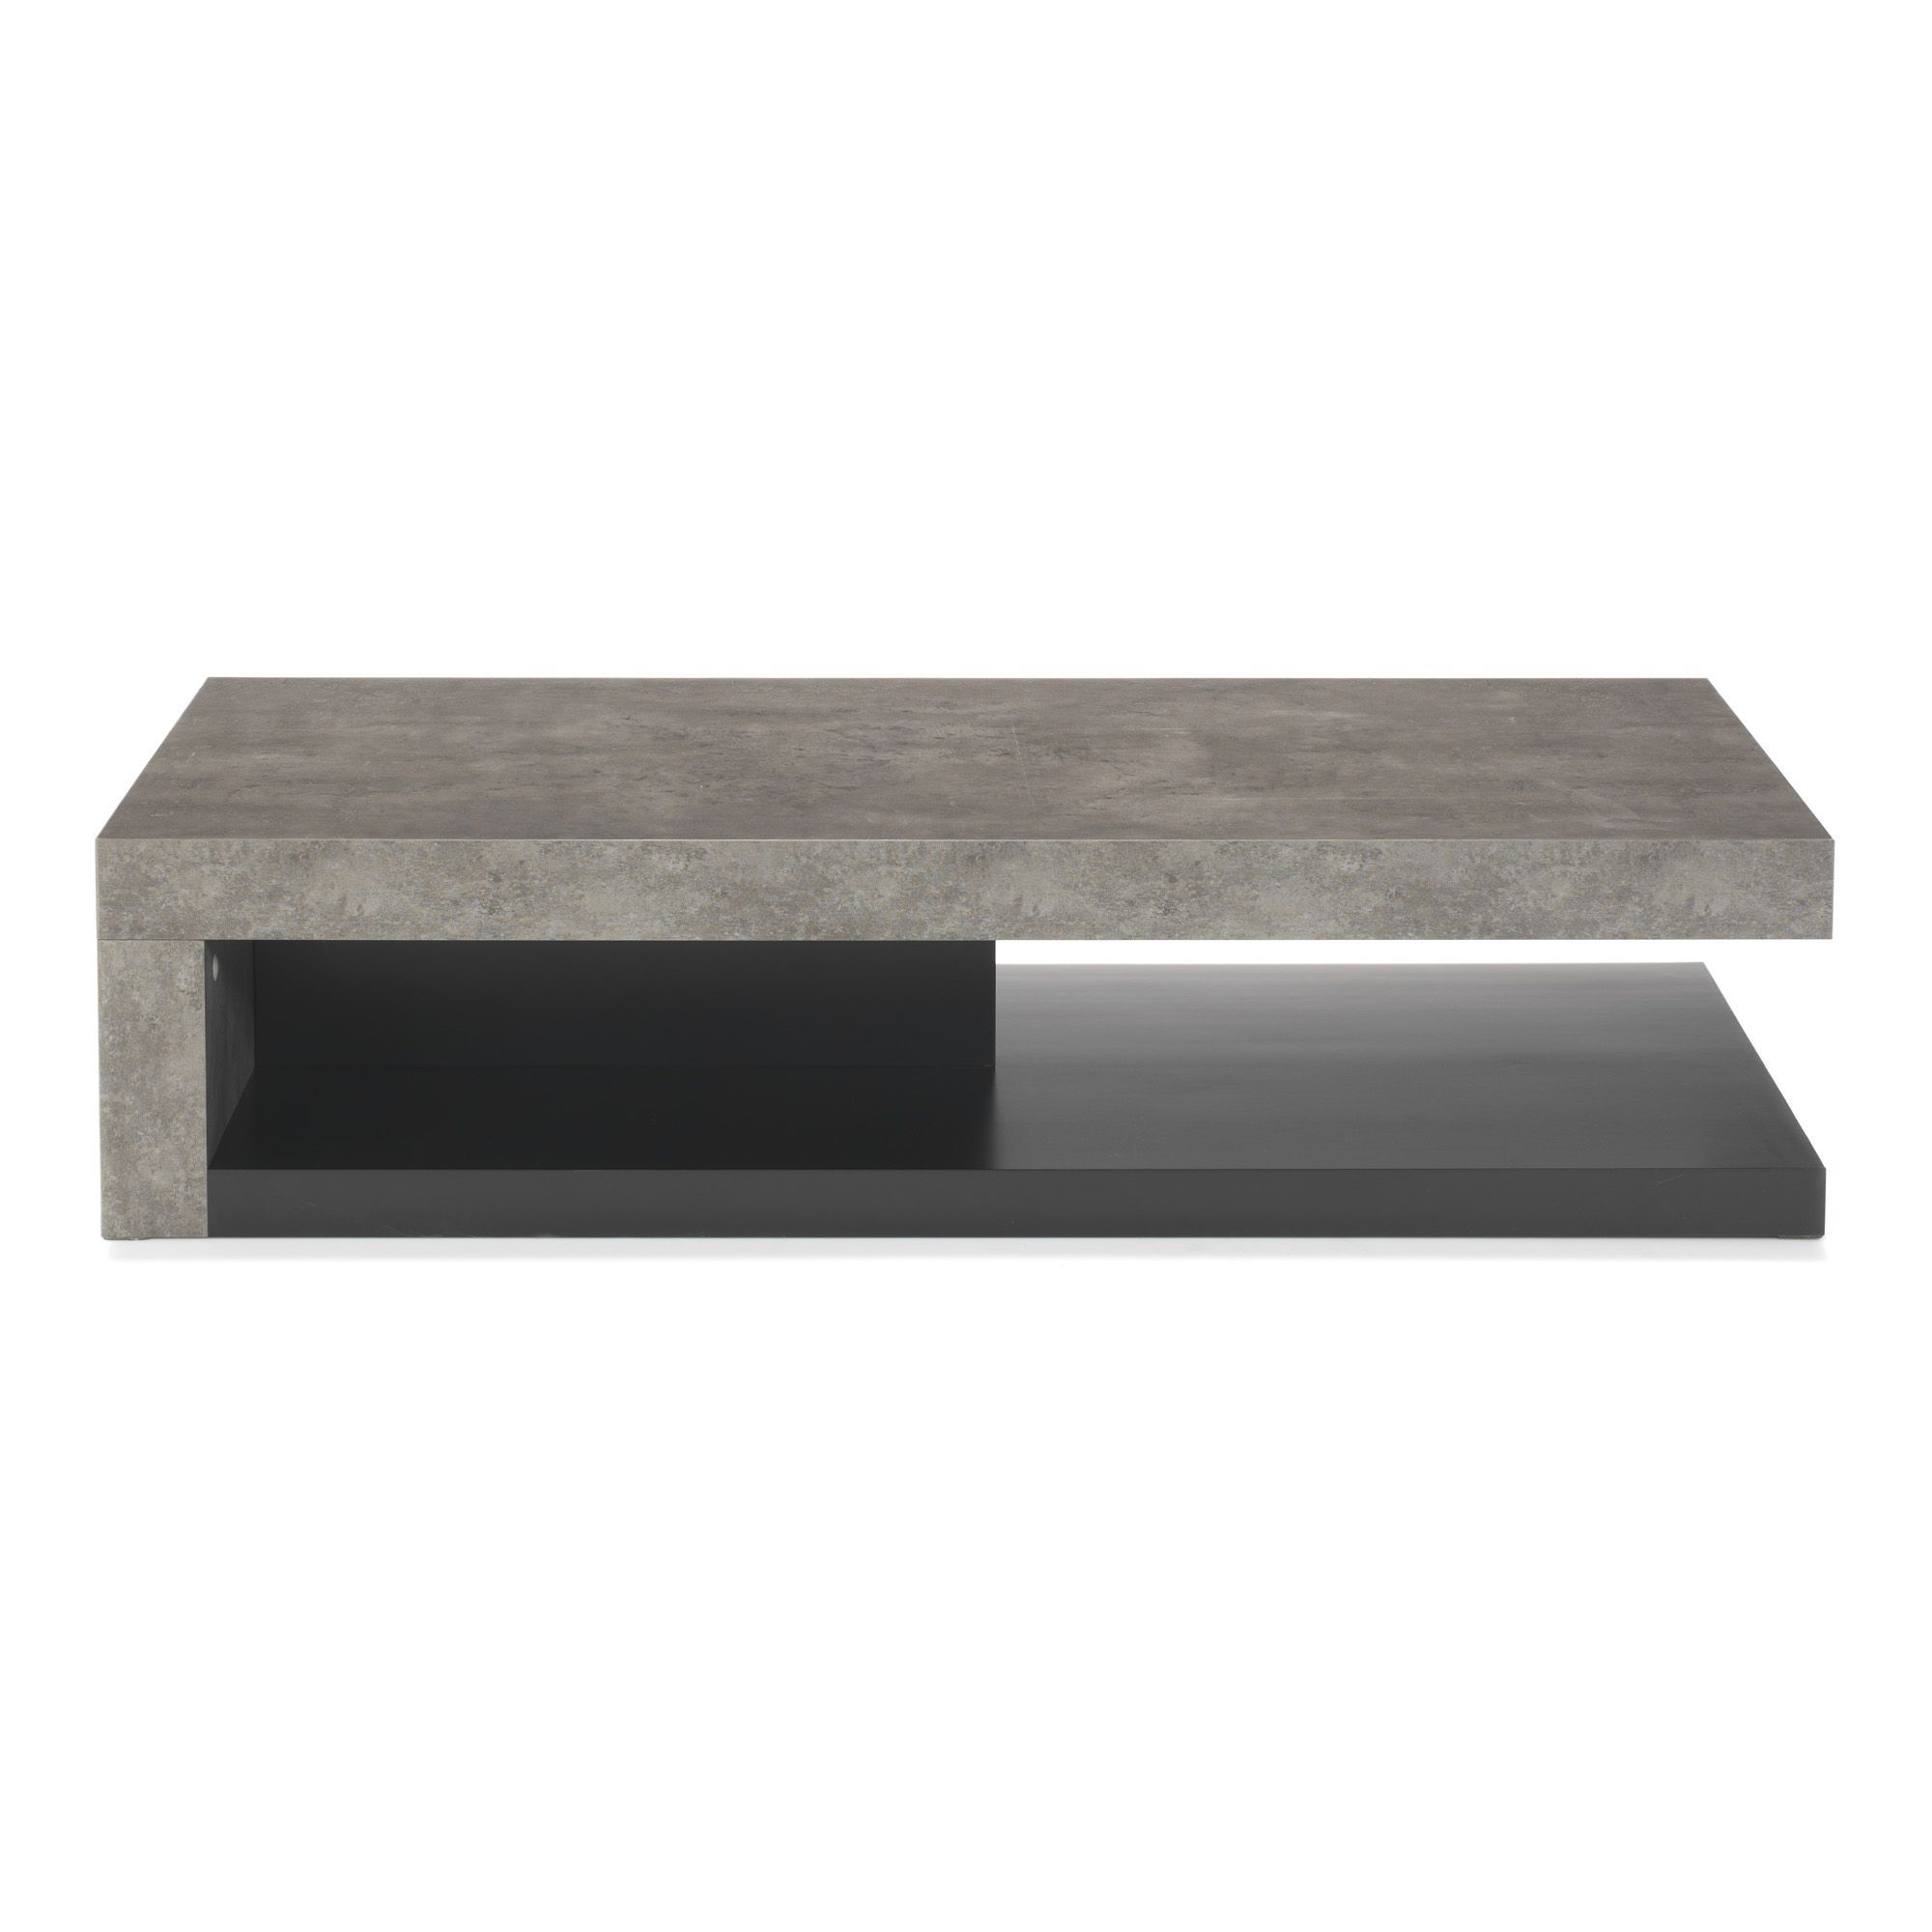 Table basse effet b ton gris et noir hilo les tables for Table basse scandinave alinea